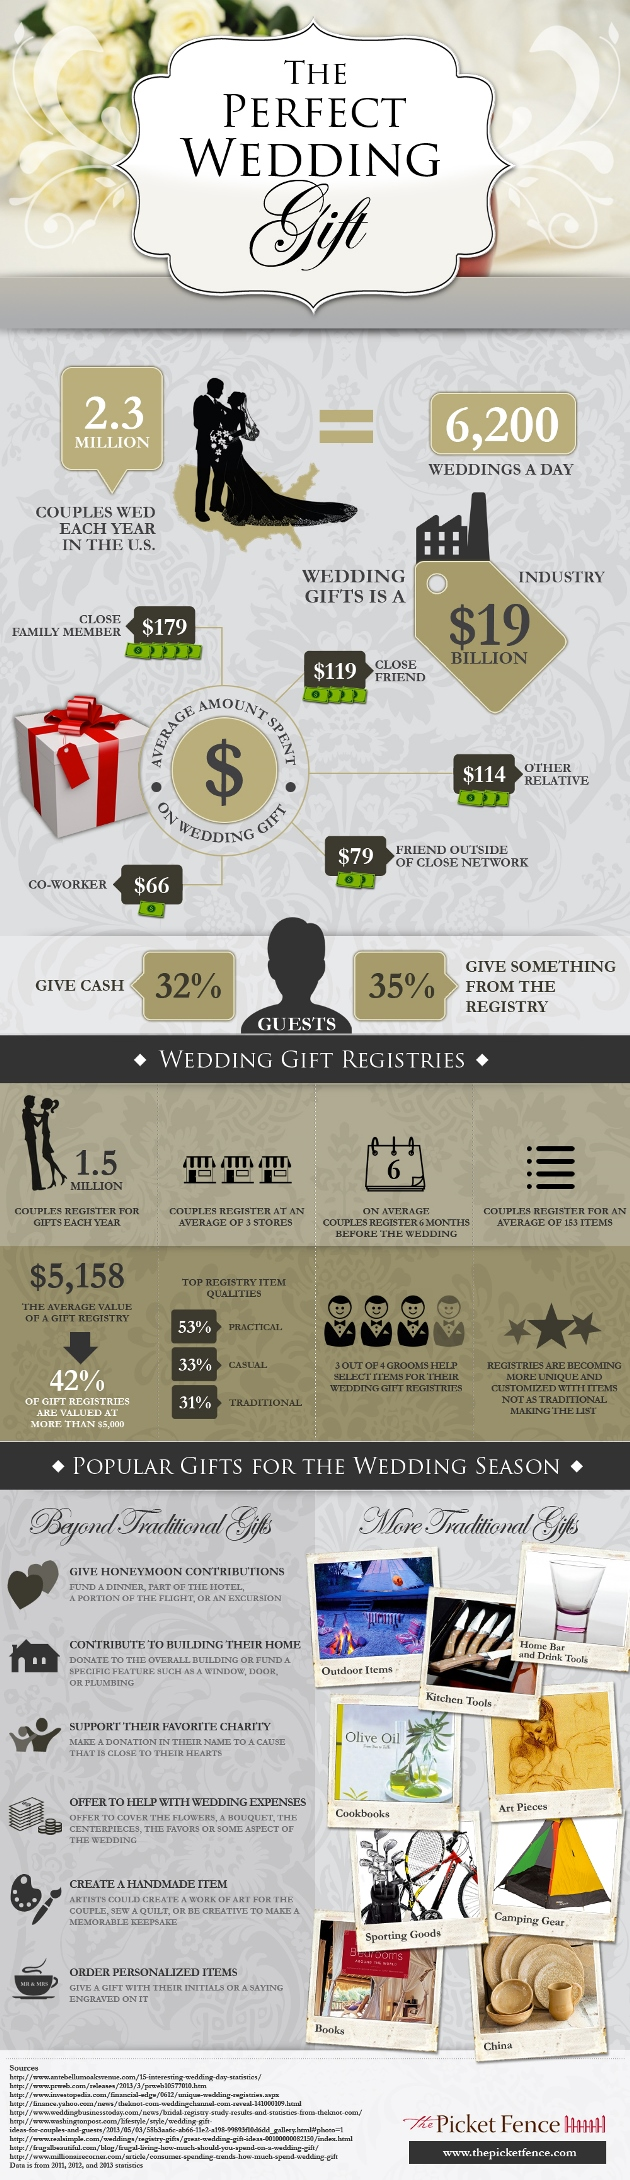 Finding the Perfect Wedding Gift graphic